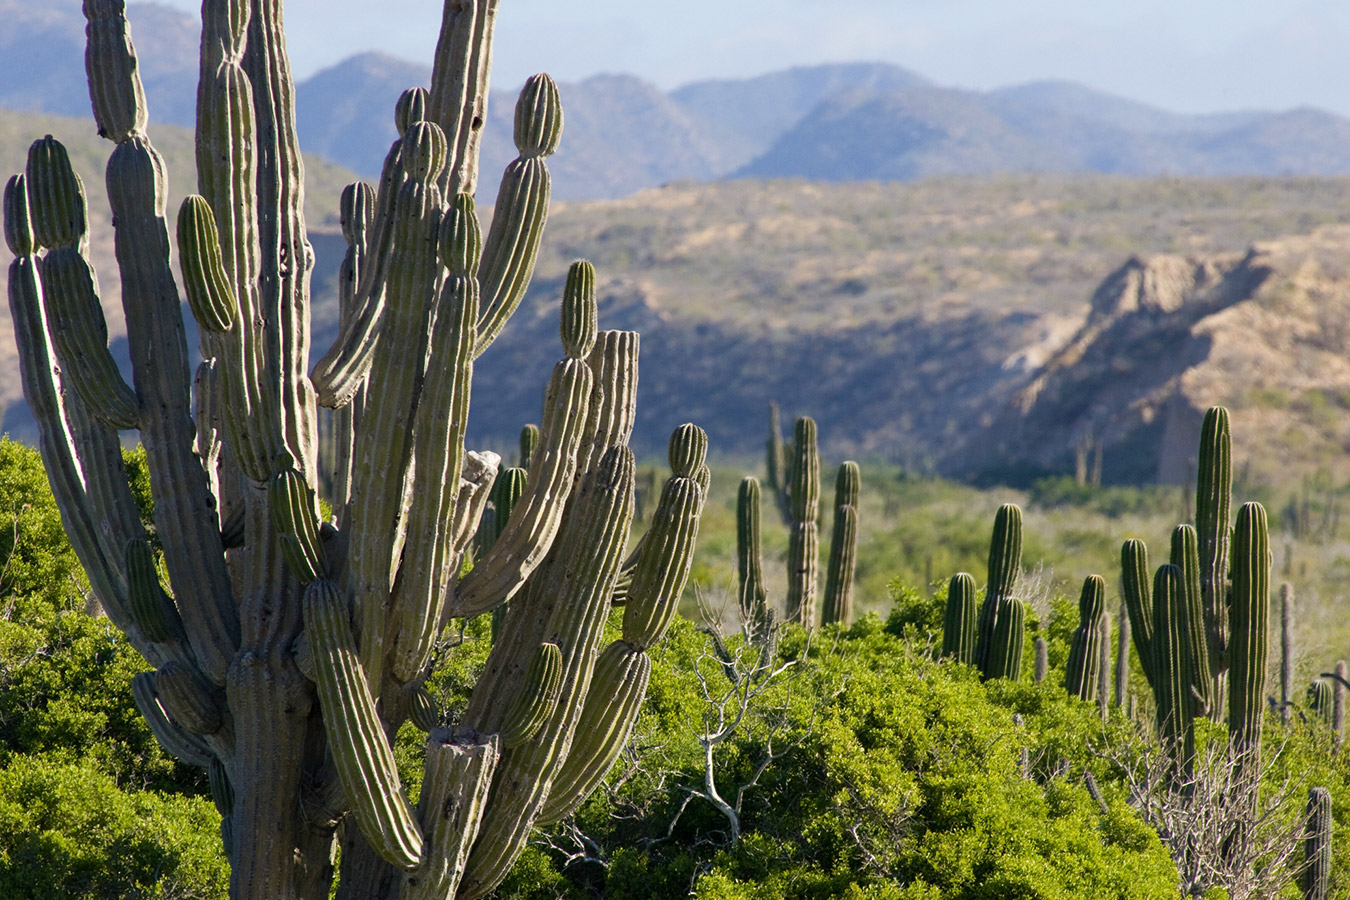 Cardon Cactus with Mountain Backdrop - Yoga Retreat - Mexico